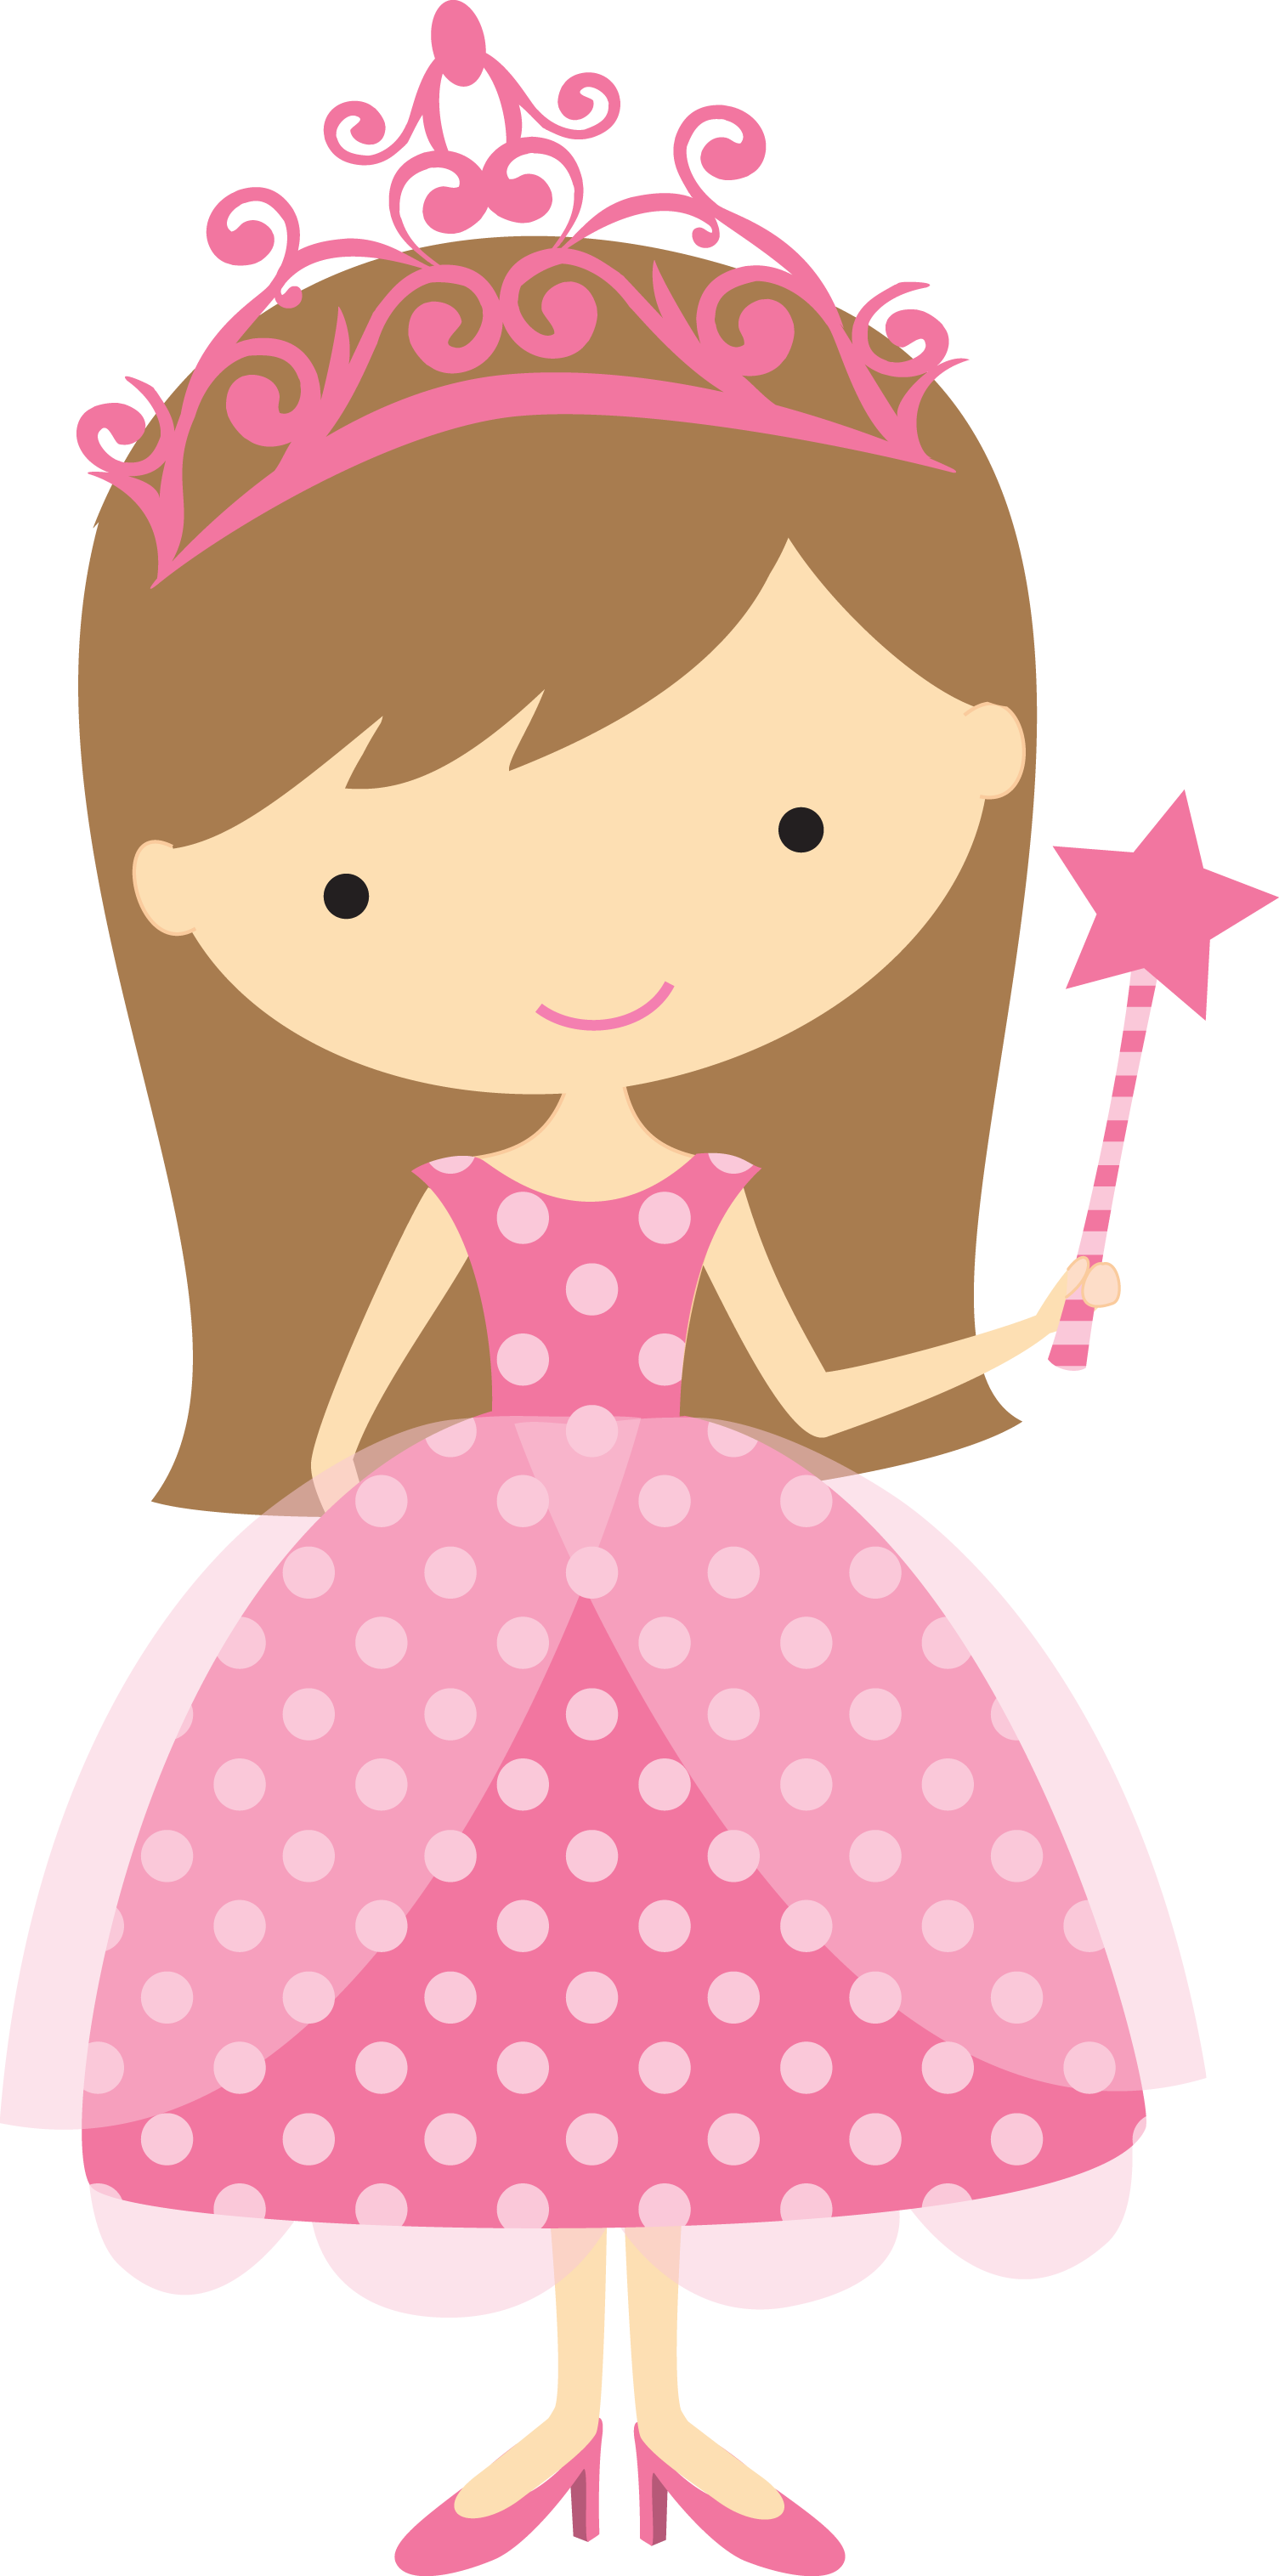 Princess crown and wand clipart image transparent نتيجة بحث الصور عن pretty png images | ملحقات فوتوشوب - العام ... image transparent